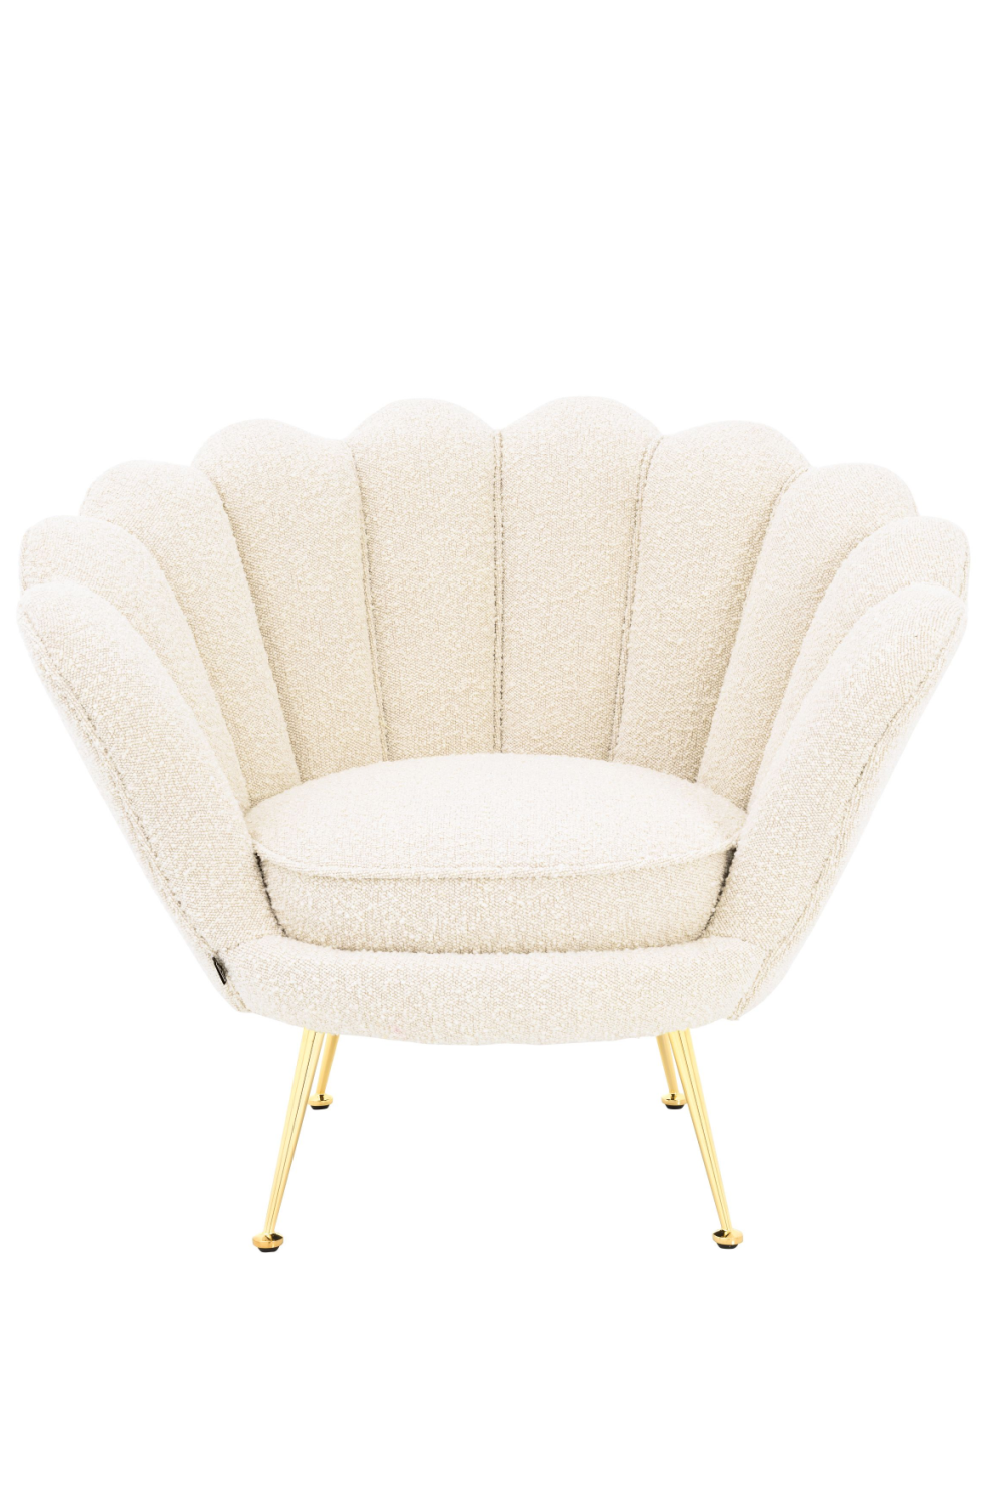 Bouclé Scalloped Accent Chair | Eichholtz Trapezium